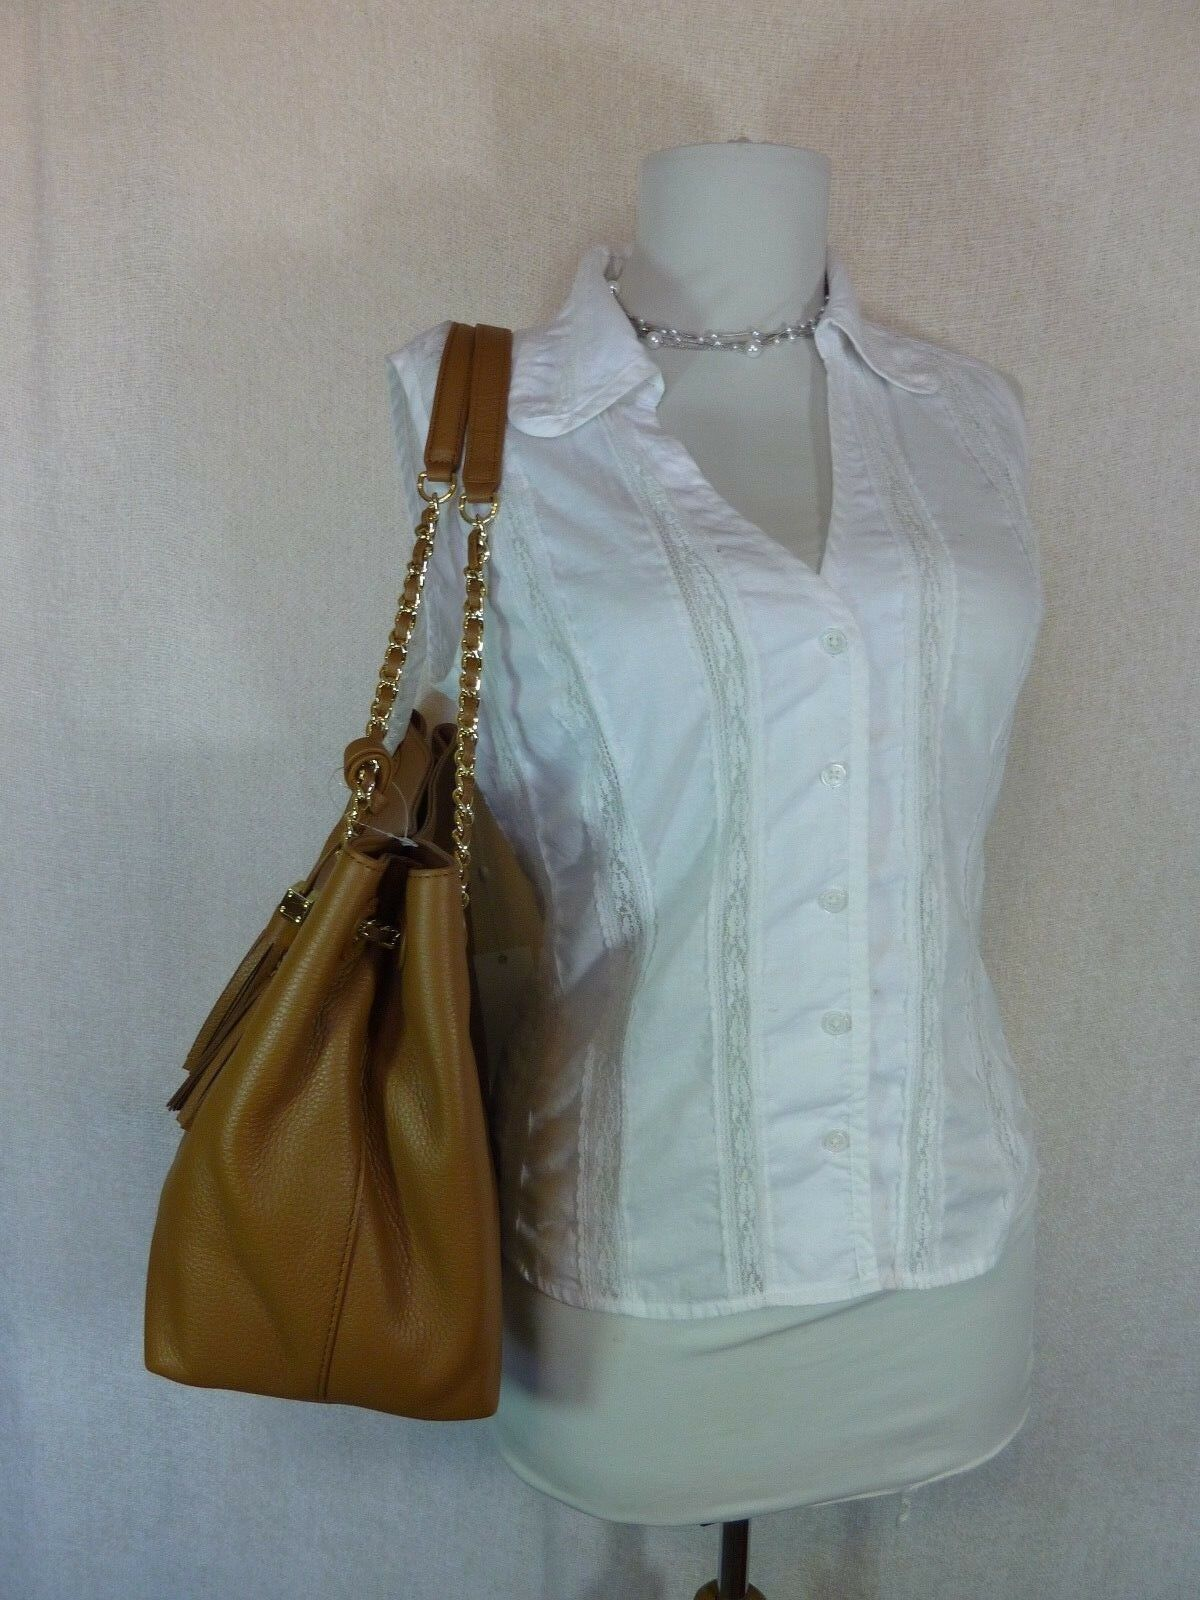 NWT Tory Burch Bark Brown Pebbled Leather Thea Chain Slouchy Tote $495 image 3